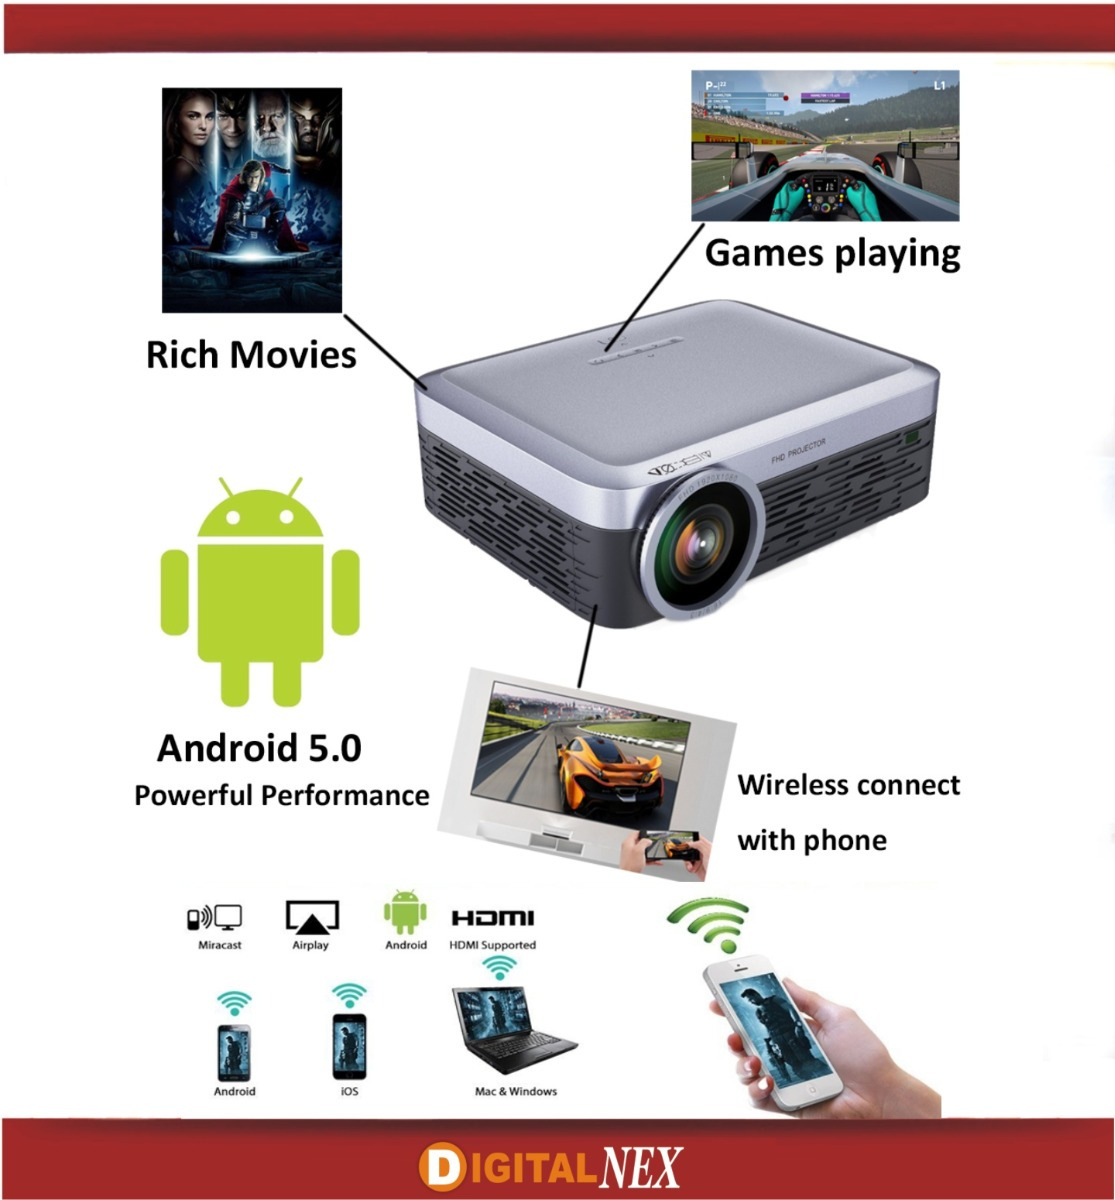 https://http2.mlstatic.com/proyector-led-6500-lumens-wifi-android-51-full-hd-nativo-D_NQ_NP_830363-MLA30991674957_062019-F.jpg